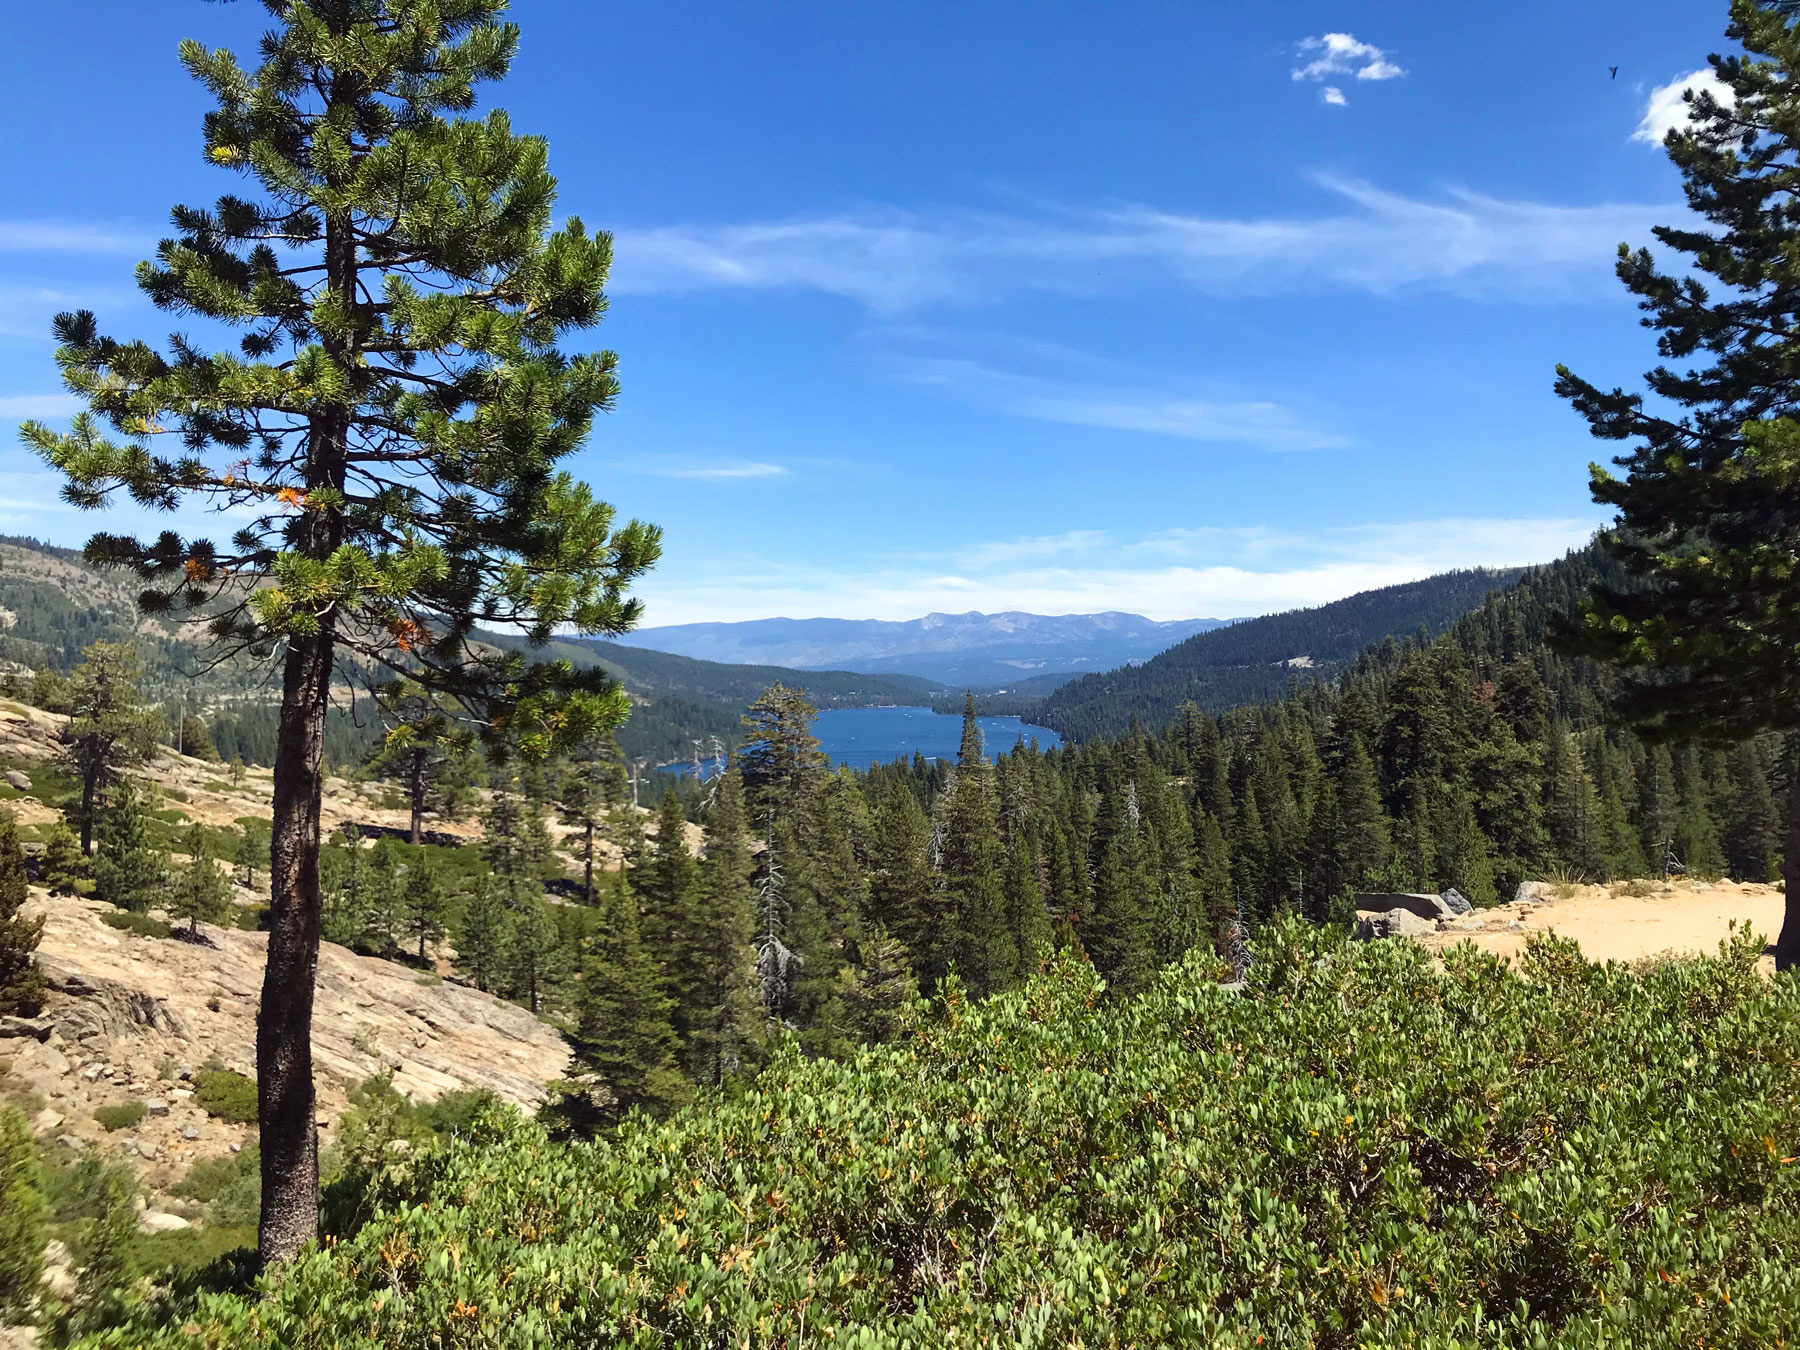 California 89 Hike of the Week - Donner Summit Canyon